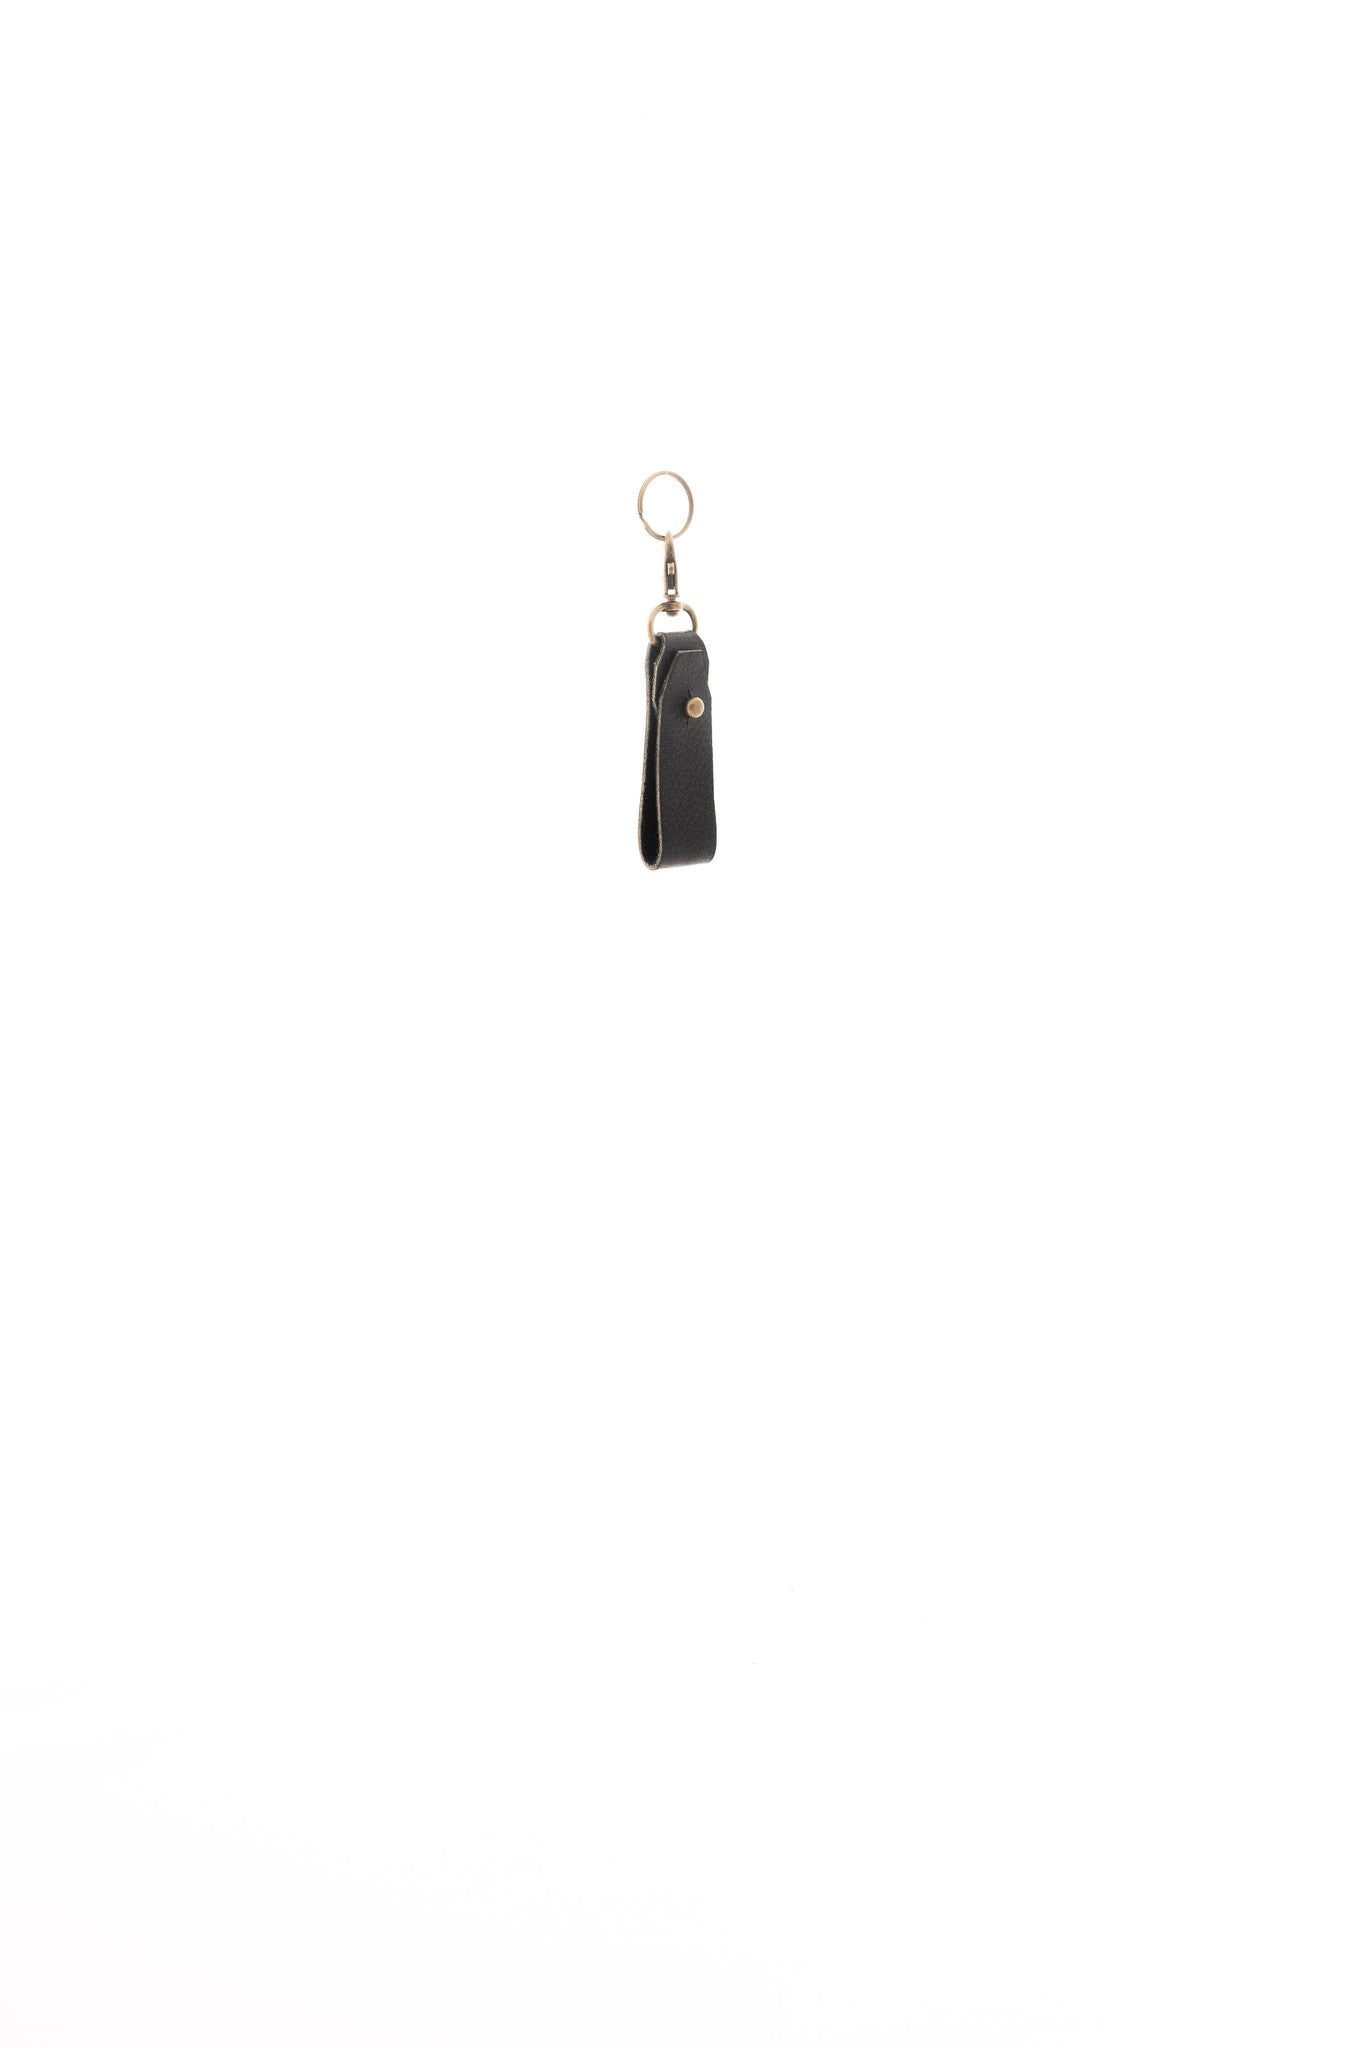 Belt Loop Key Chain Leather - handcrafted by Market Canvas Leather in Tofino, BC, Canada